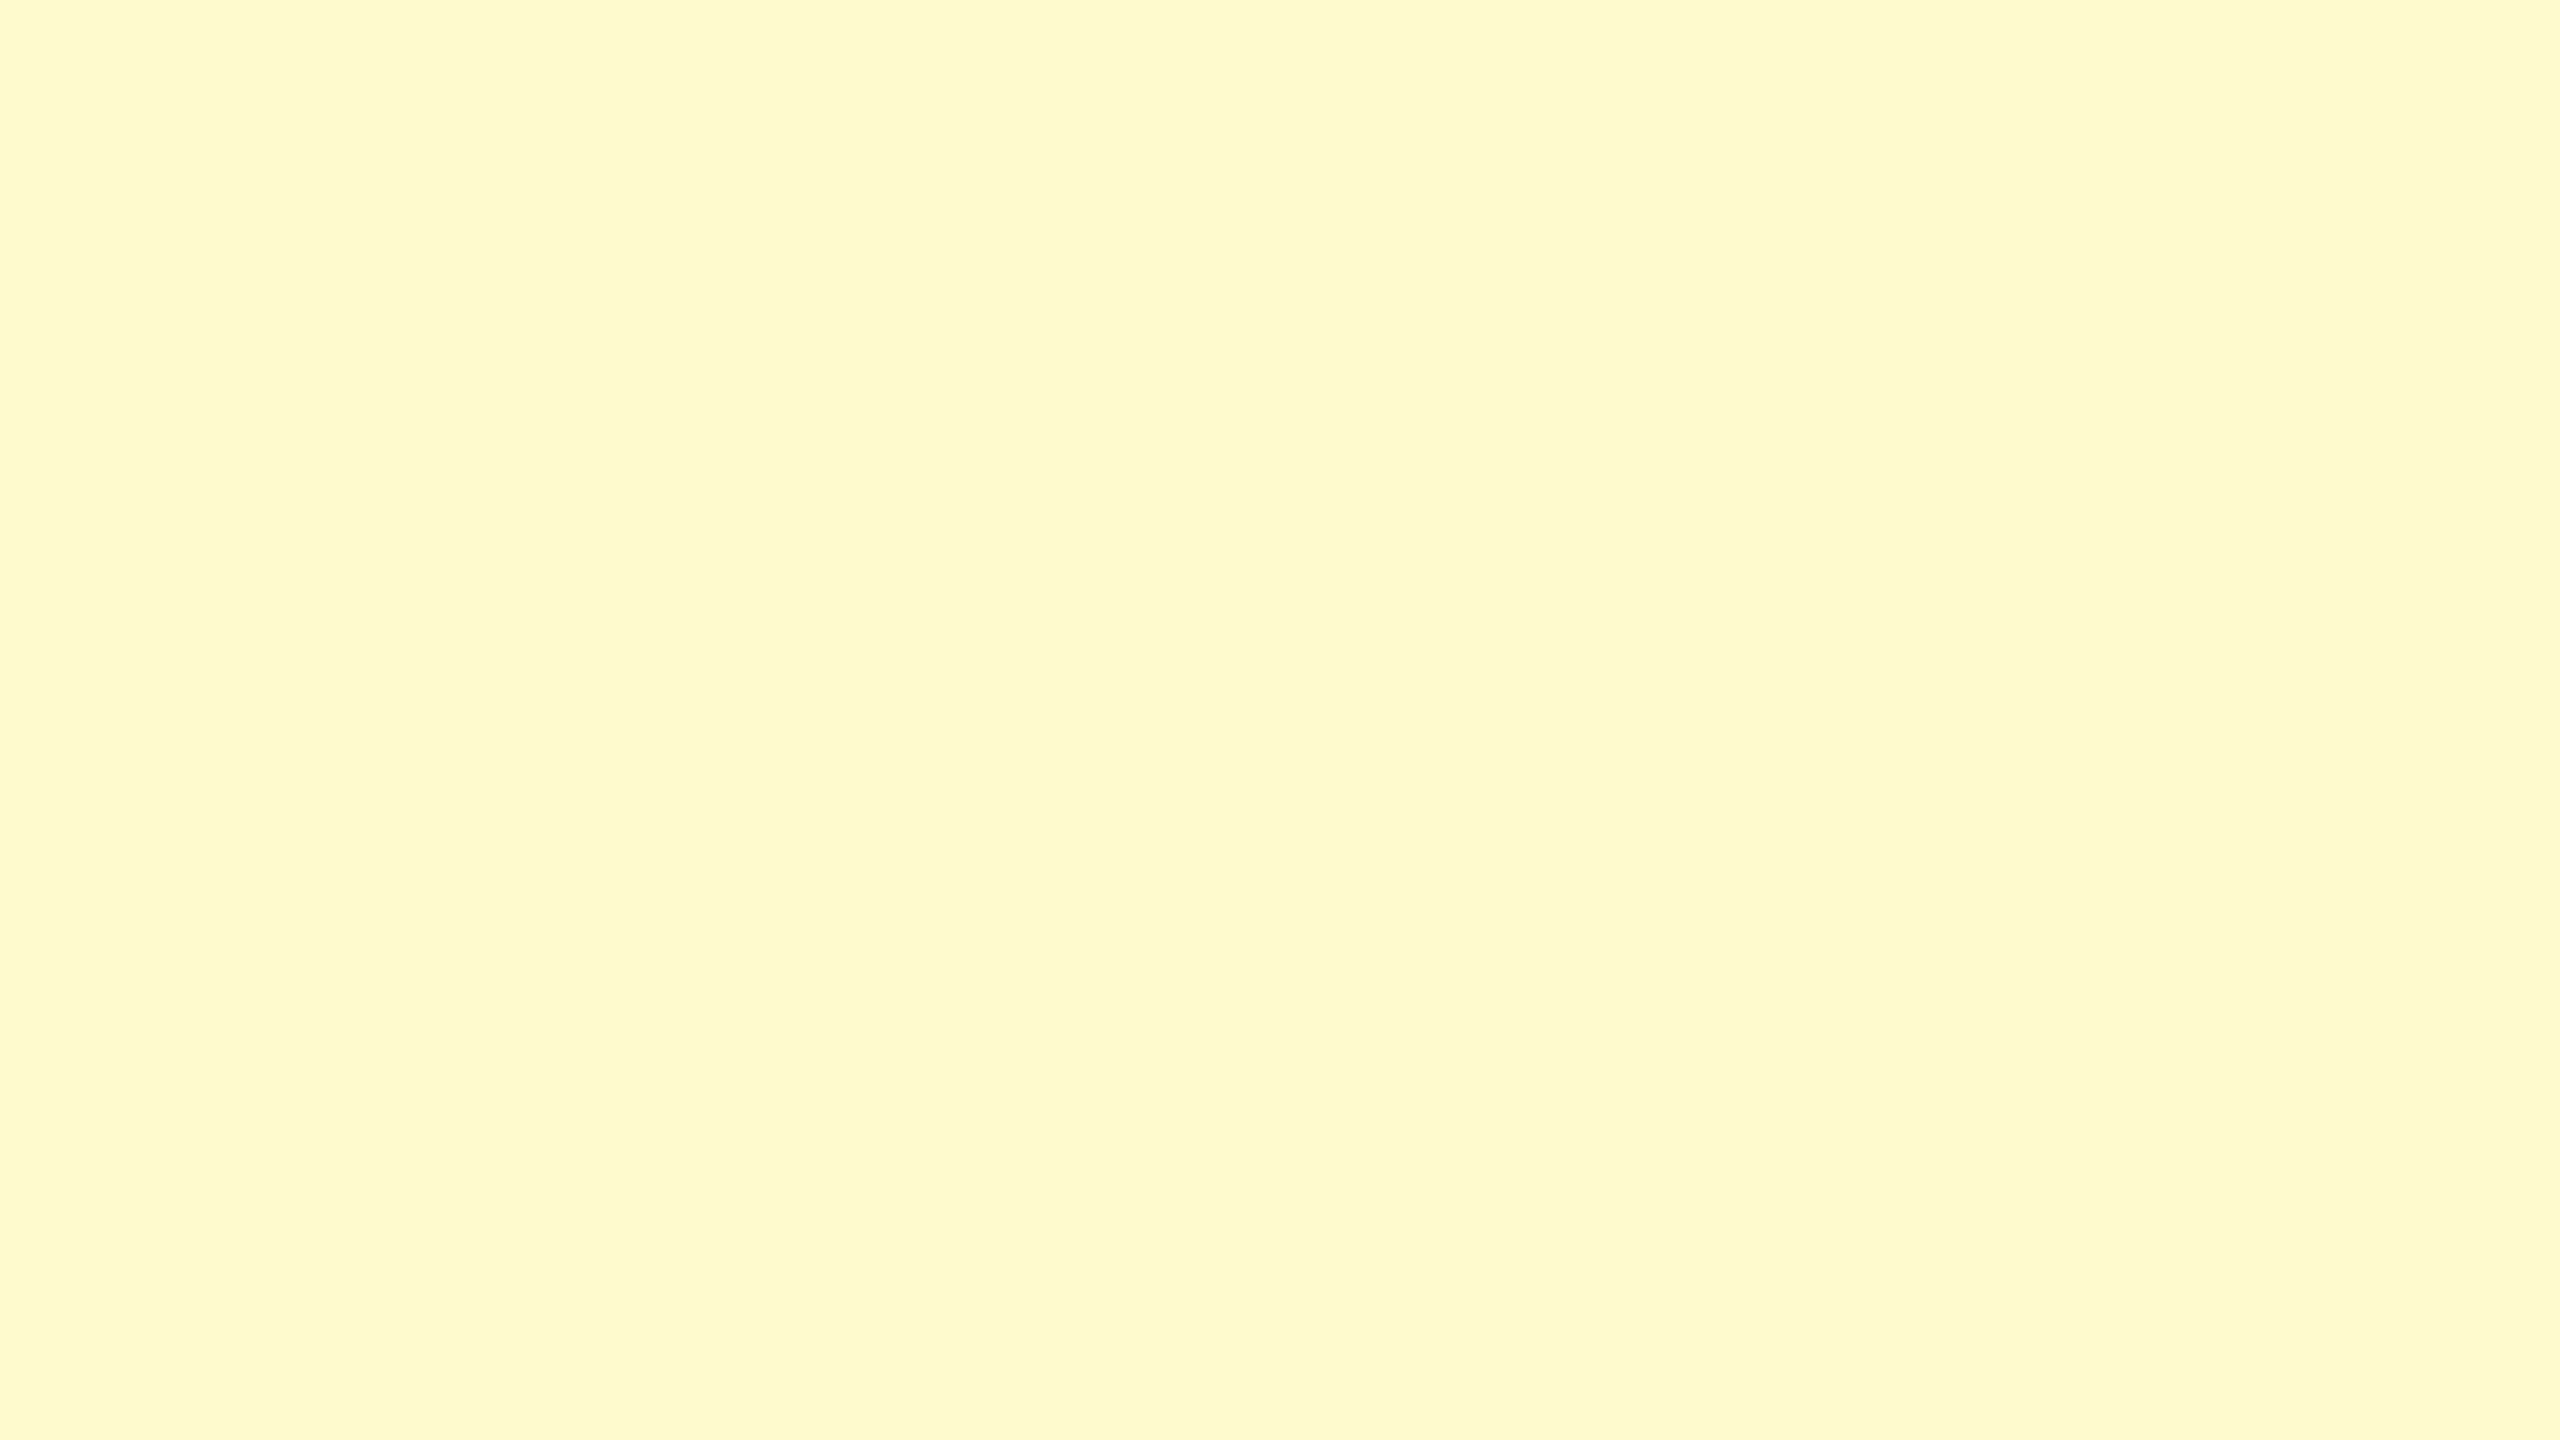 2560x1440 Lemon Chiffon Solid Color Background